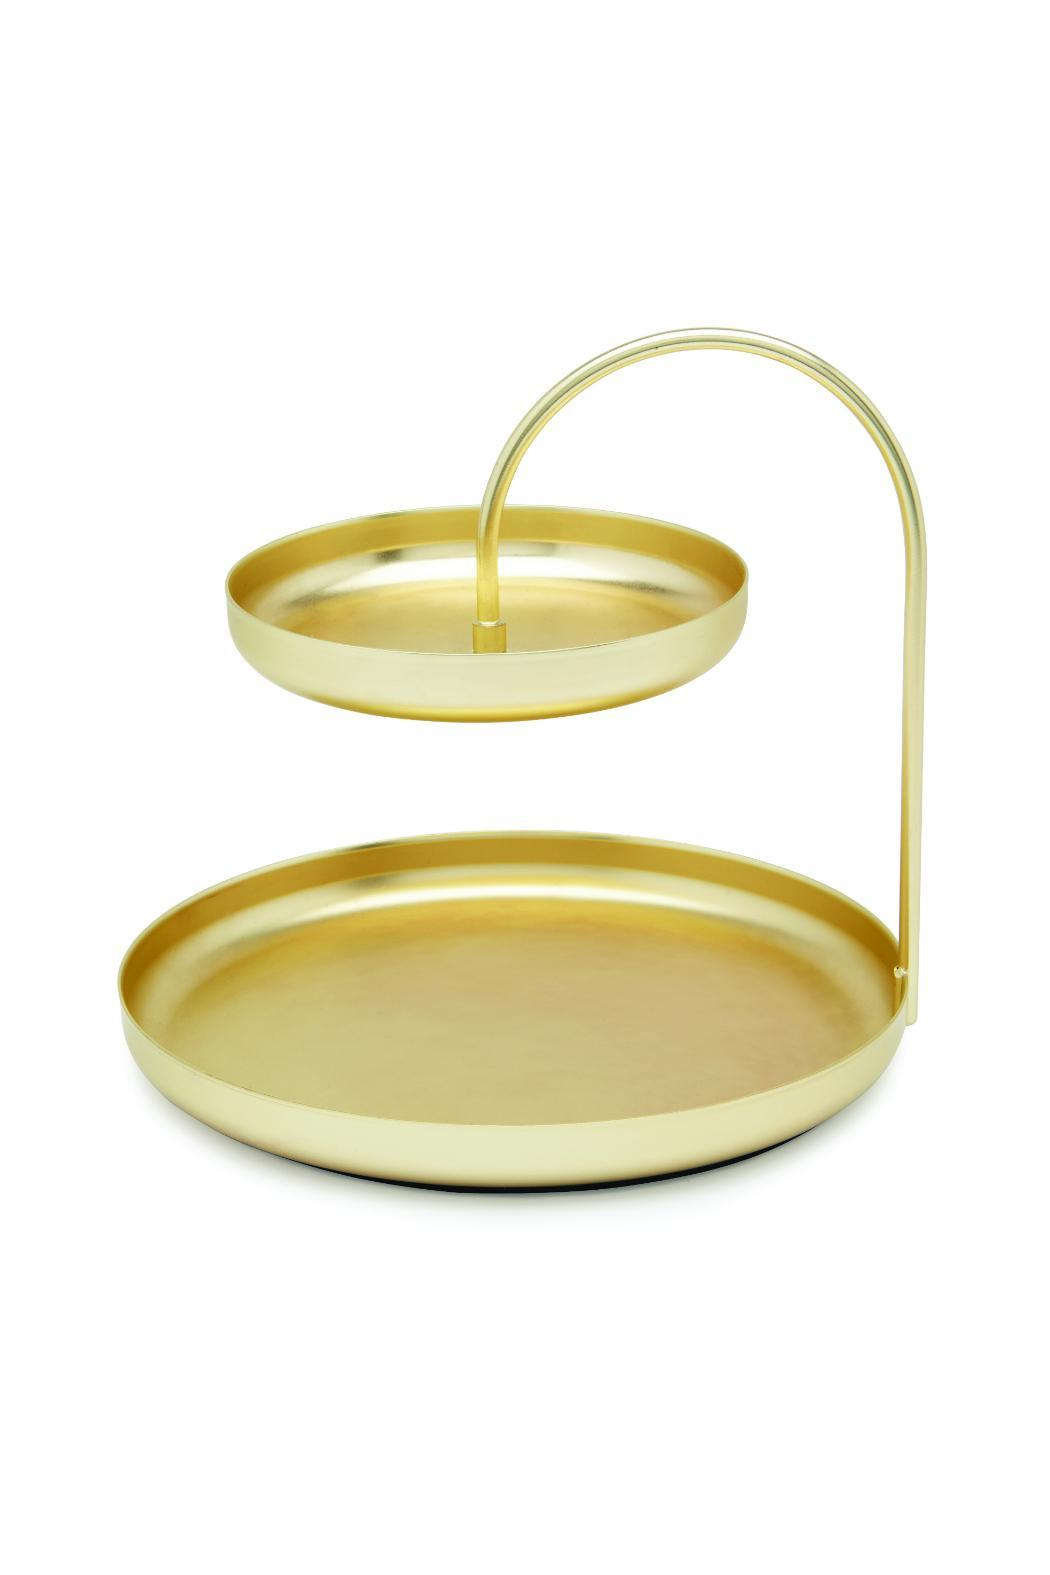 Umbra Gold Accessory Tray from Omaha by The Afternoon — Shoptiques